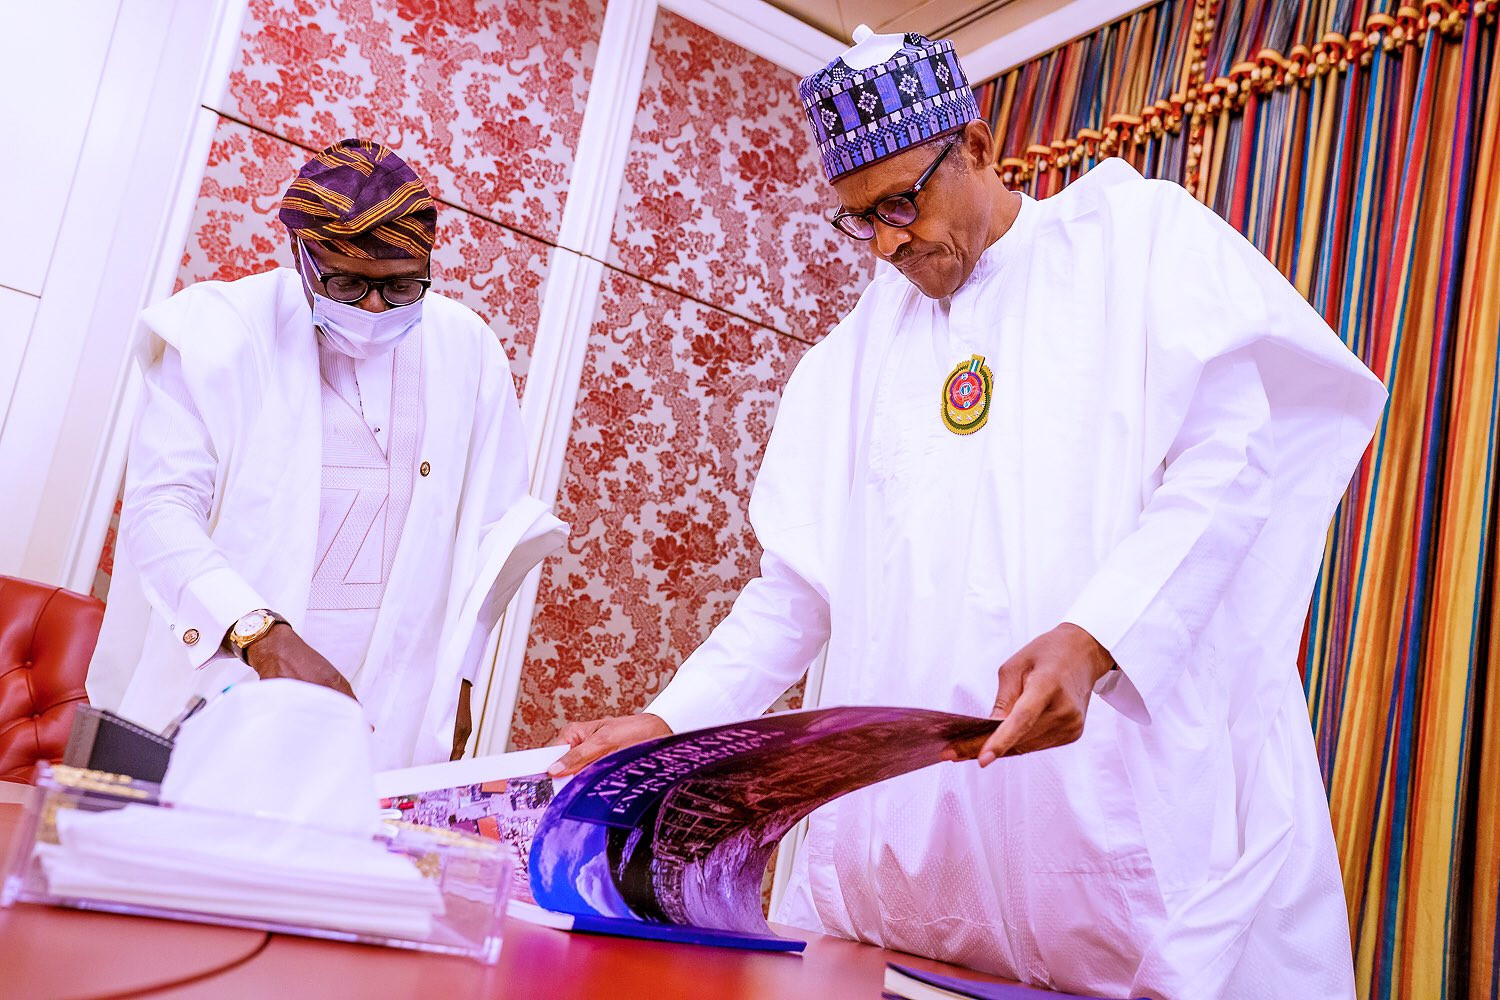 #EndSARS: Governor Sanwo-Olu presents report of assets destroyed in Lagos to President Buhari